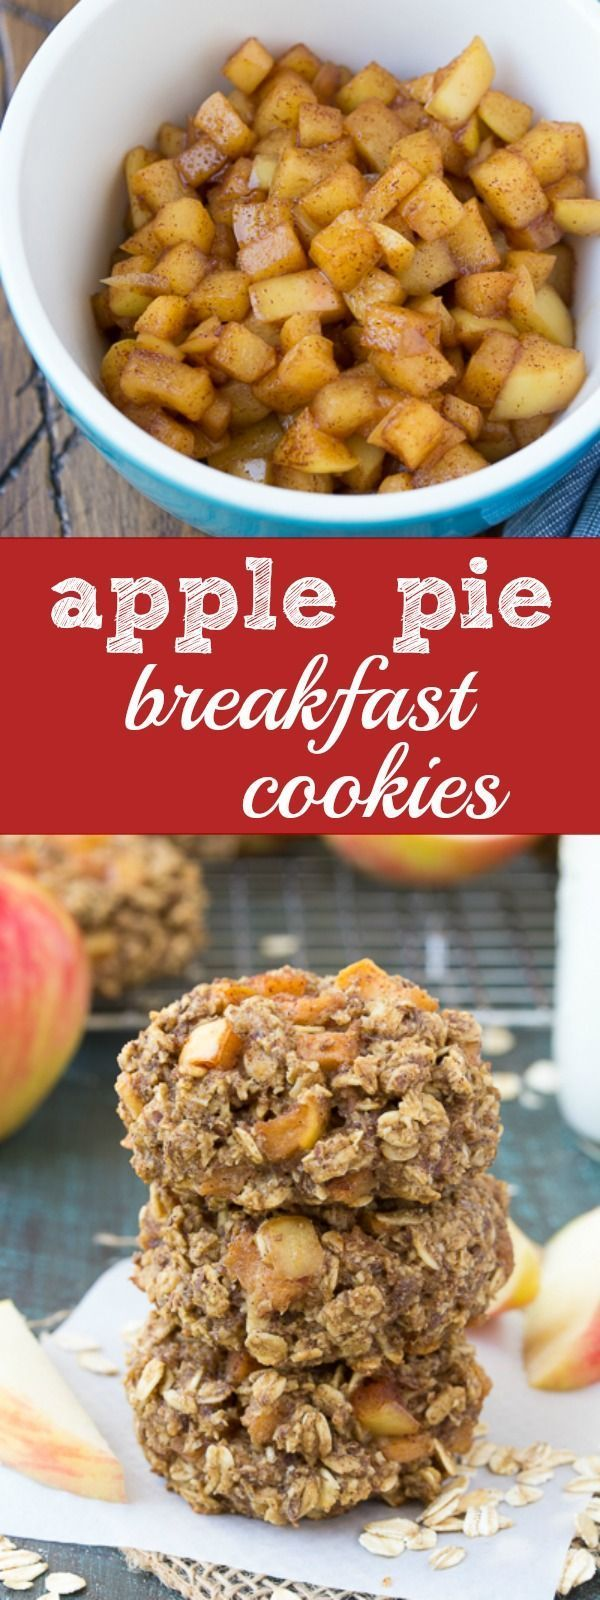 We love these Apple Pie Breakfast Cookies for quick